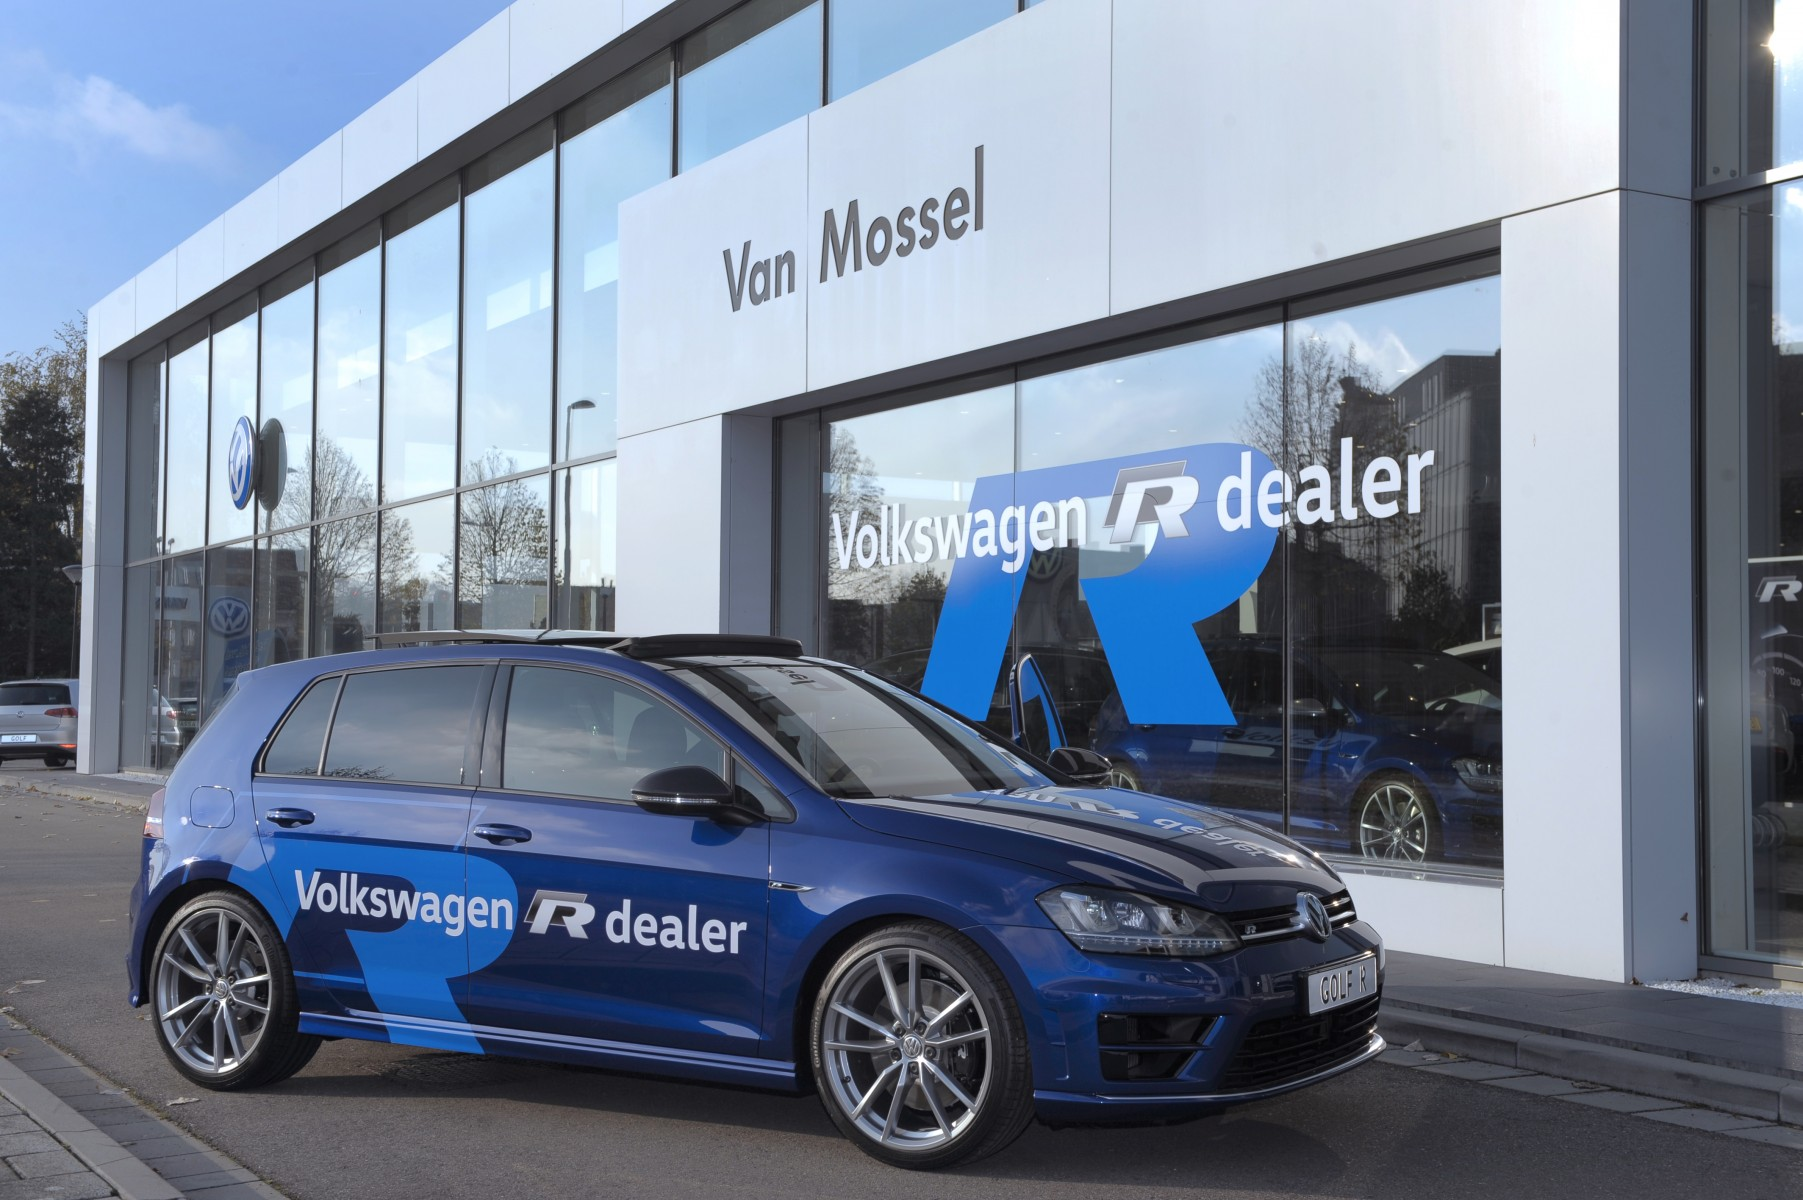 Volkswagen R-dealer